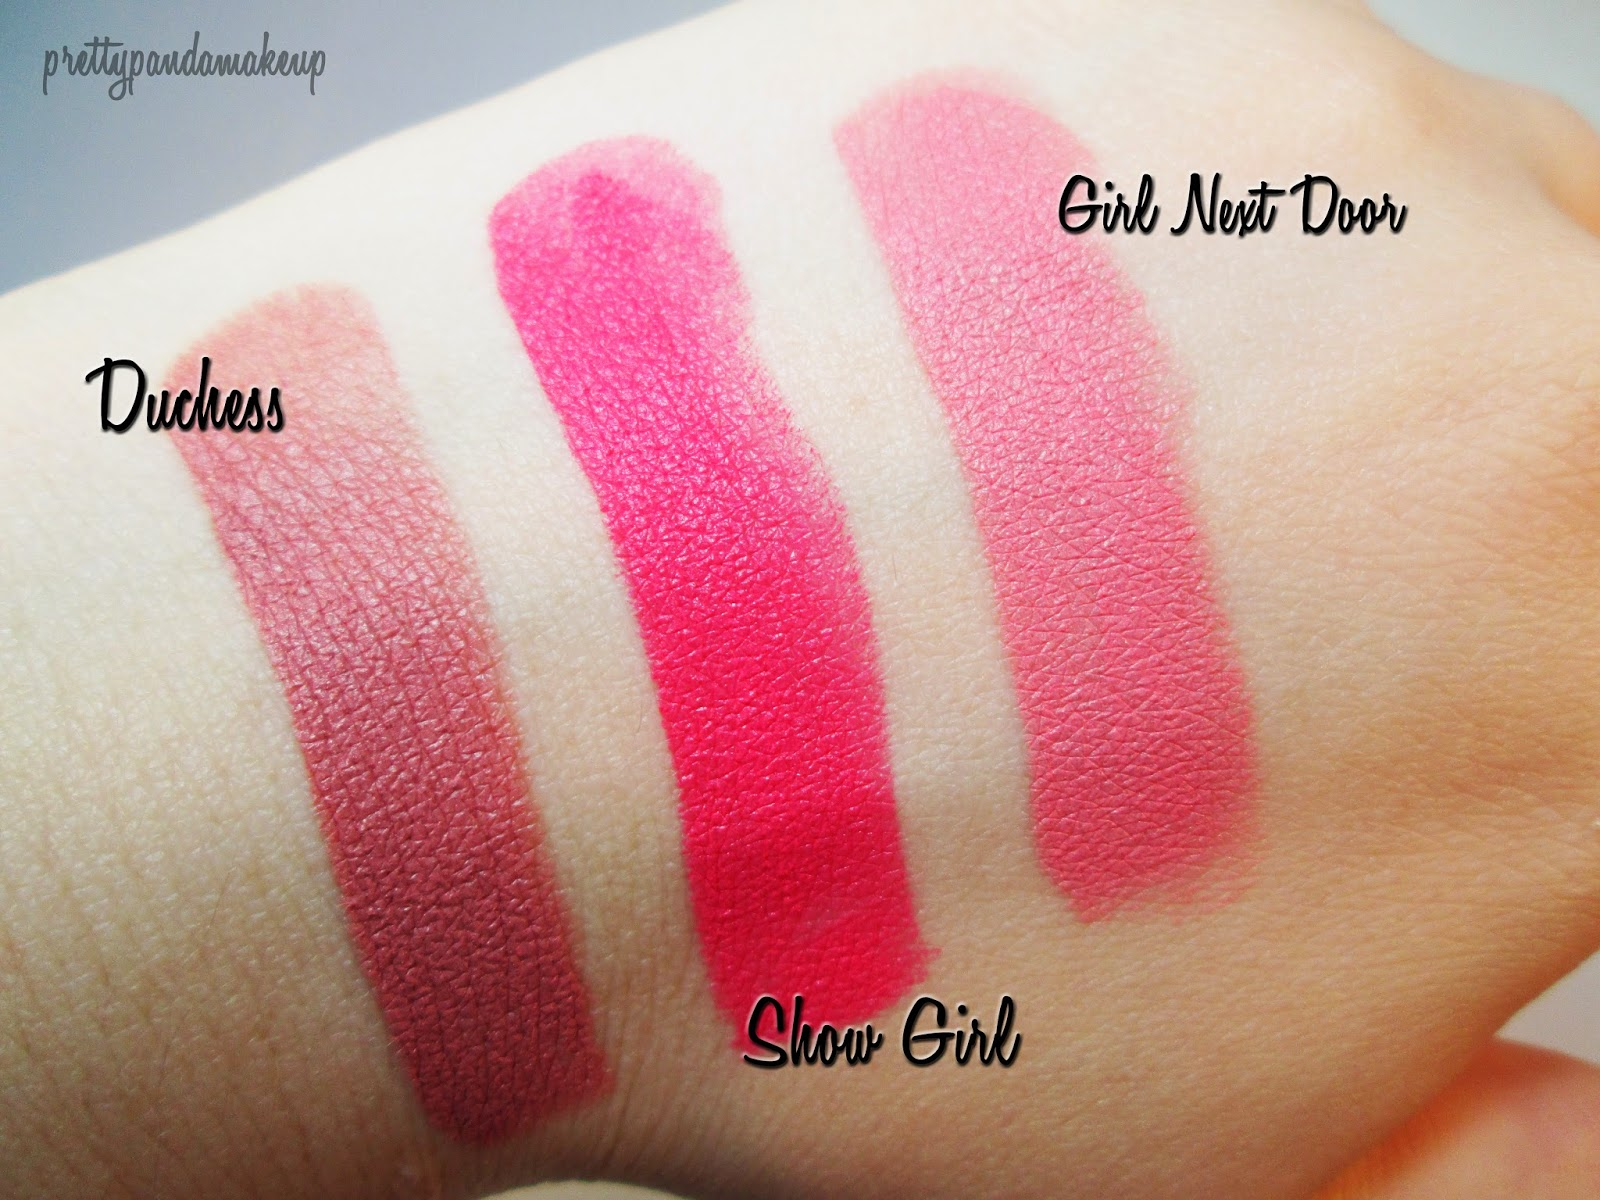 Lorac Alter Ego Lipstick in Duchess, Show Girl, and Girl Next Door swatches